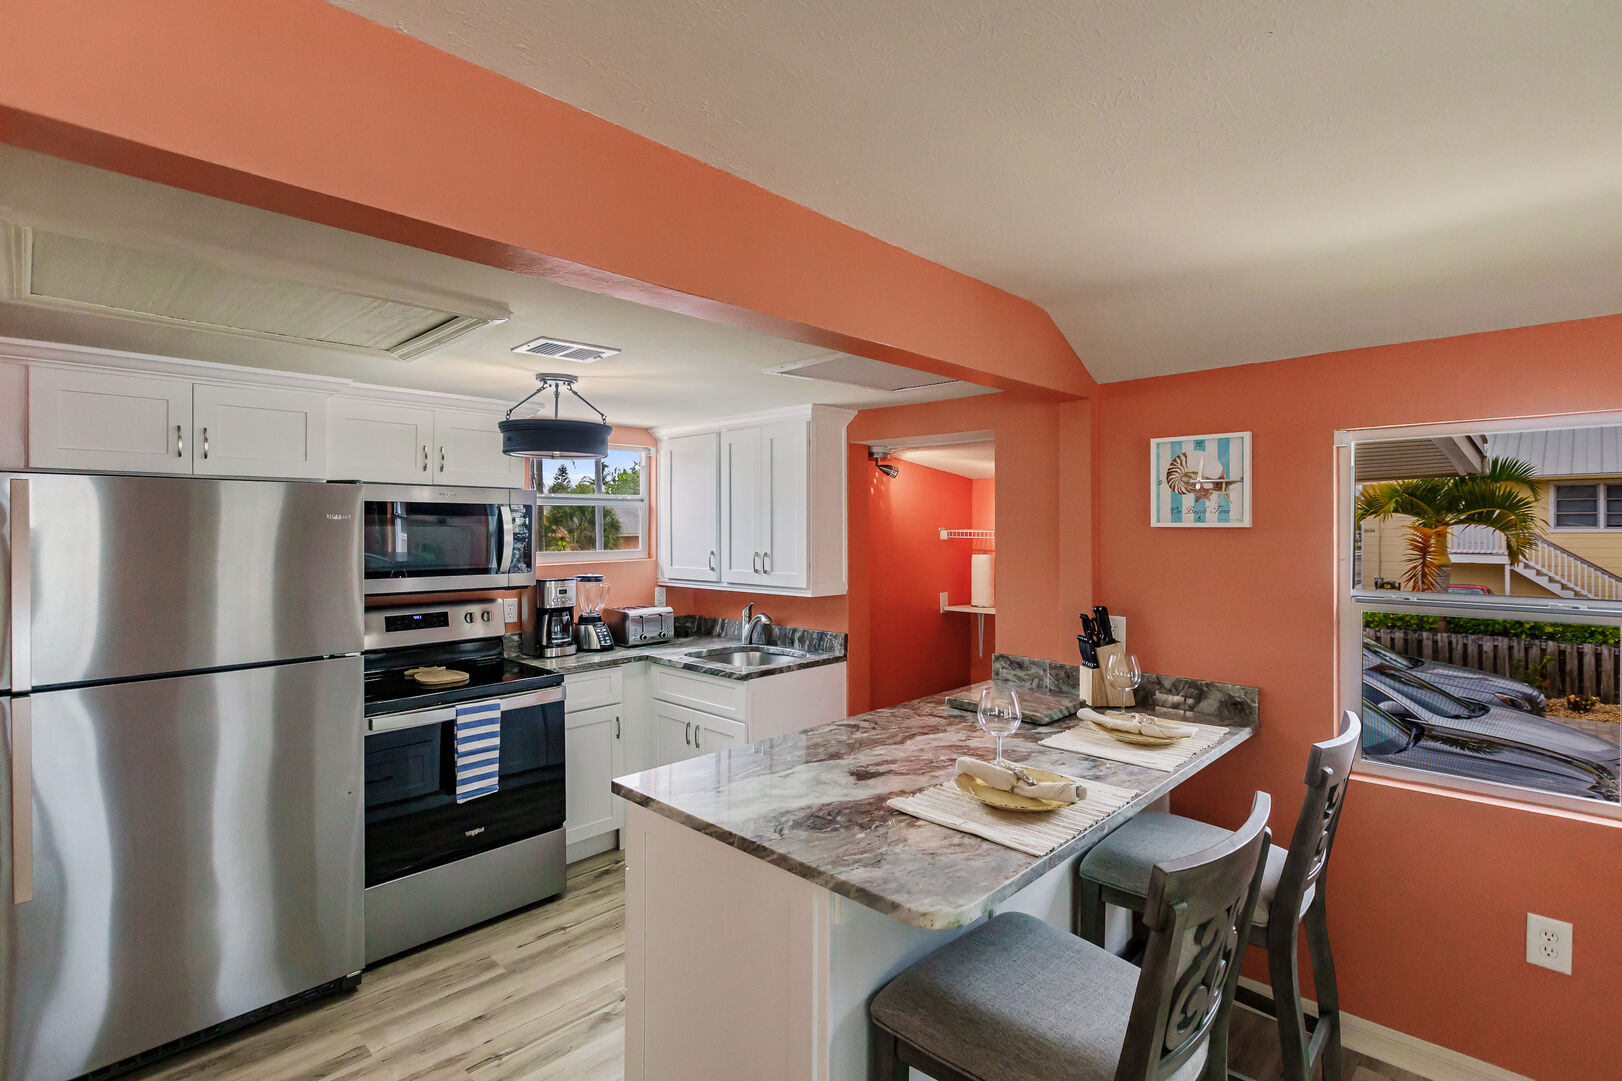 Kitchen and Countertop Seats Lovely Fort Myers Beach House Vacation Rental